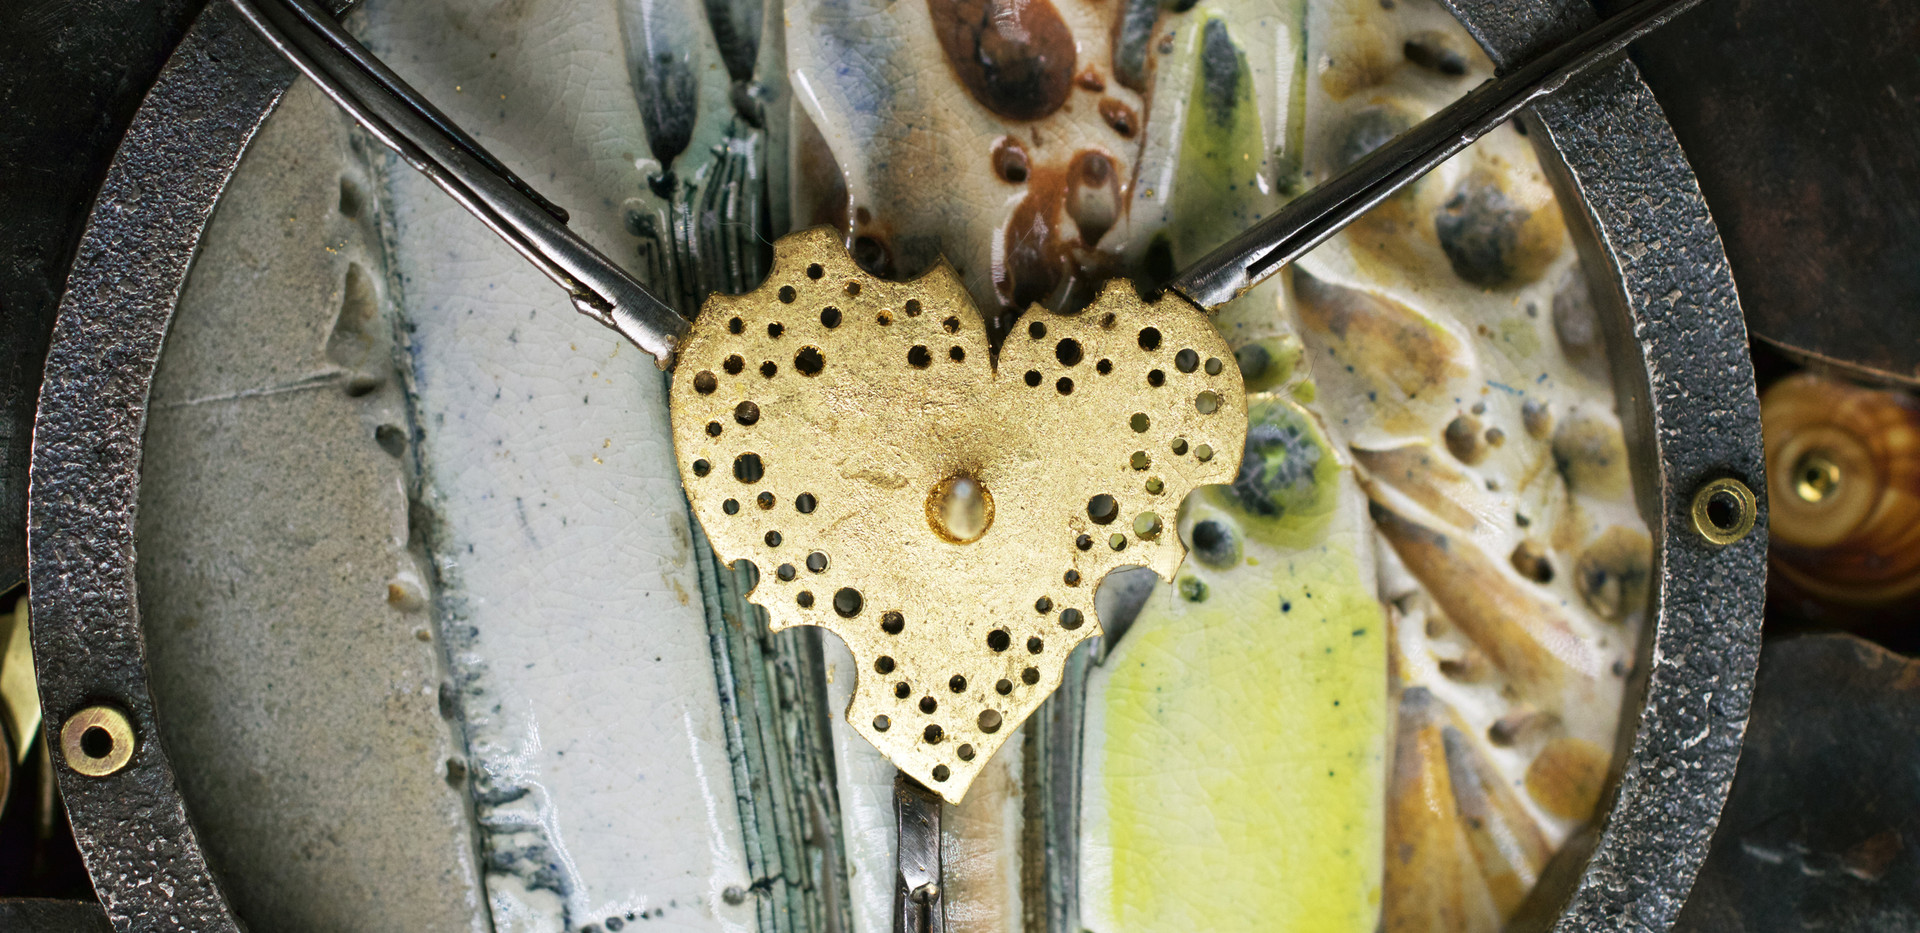 Closer detail of tattered heart: 64 holes commemorate the age of the person memorialized in this commission.